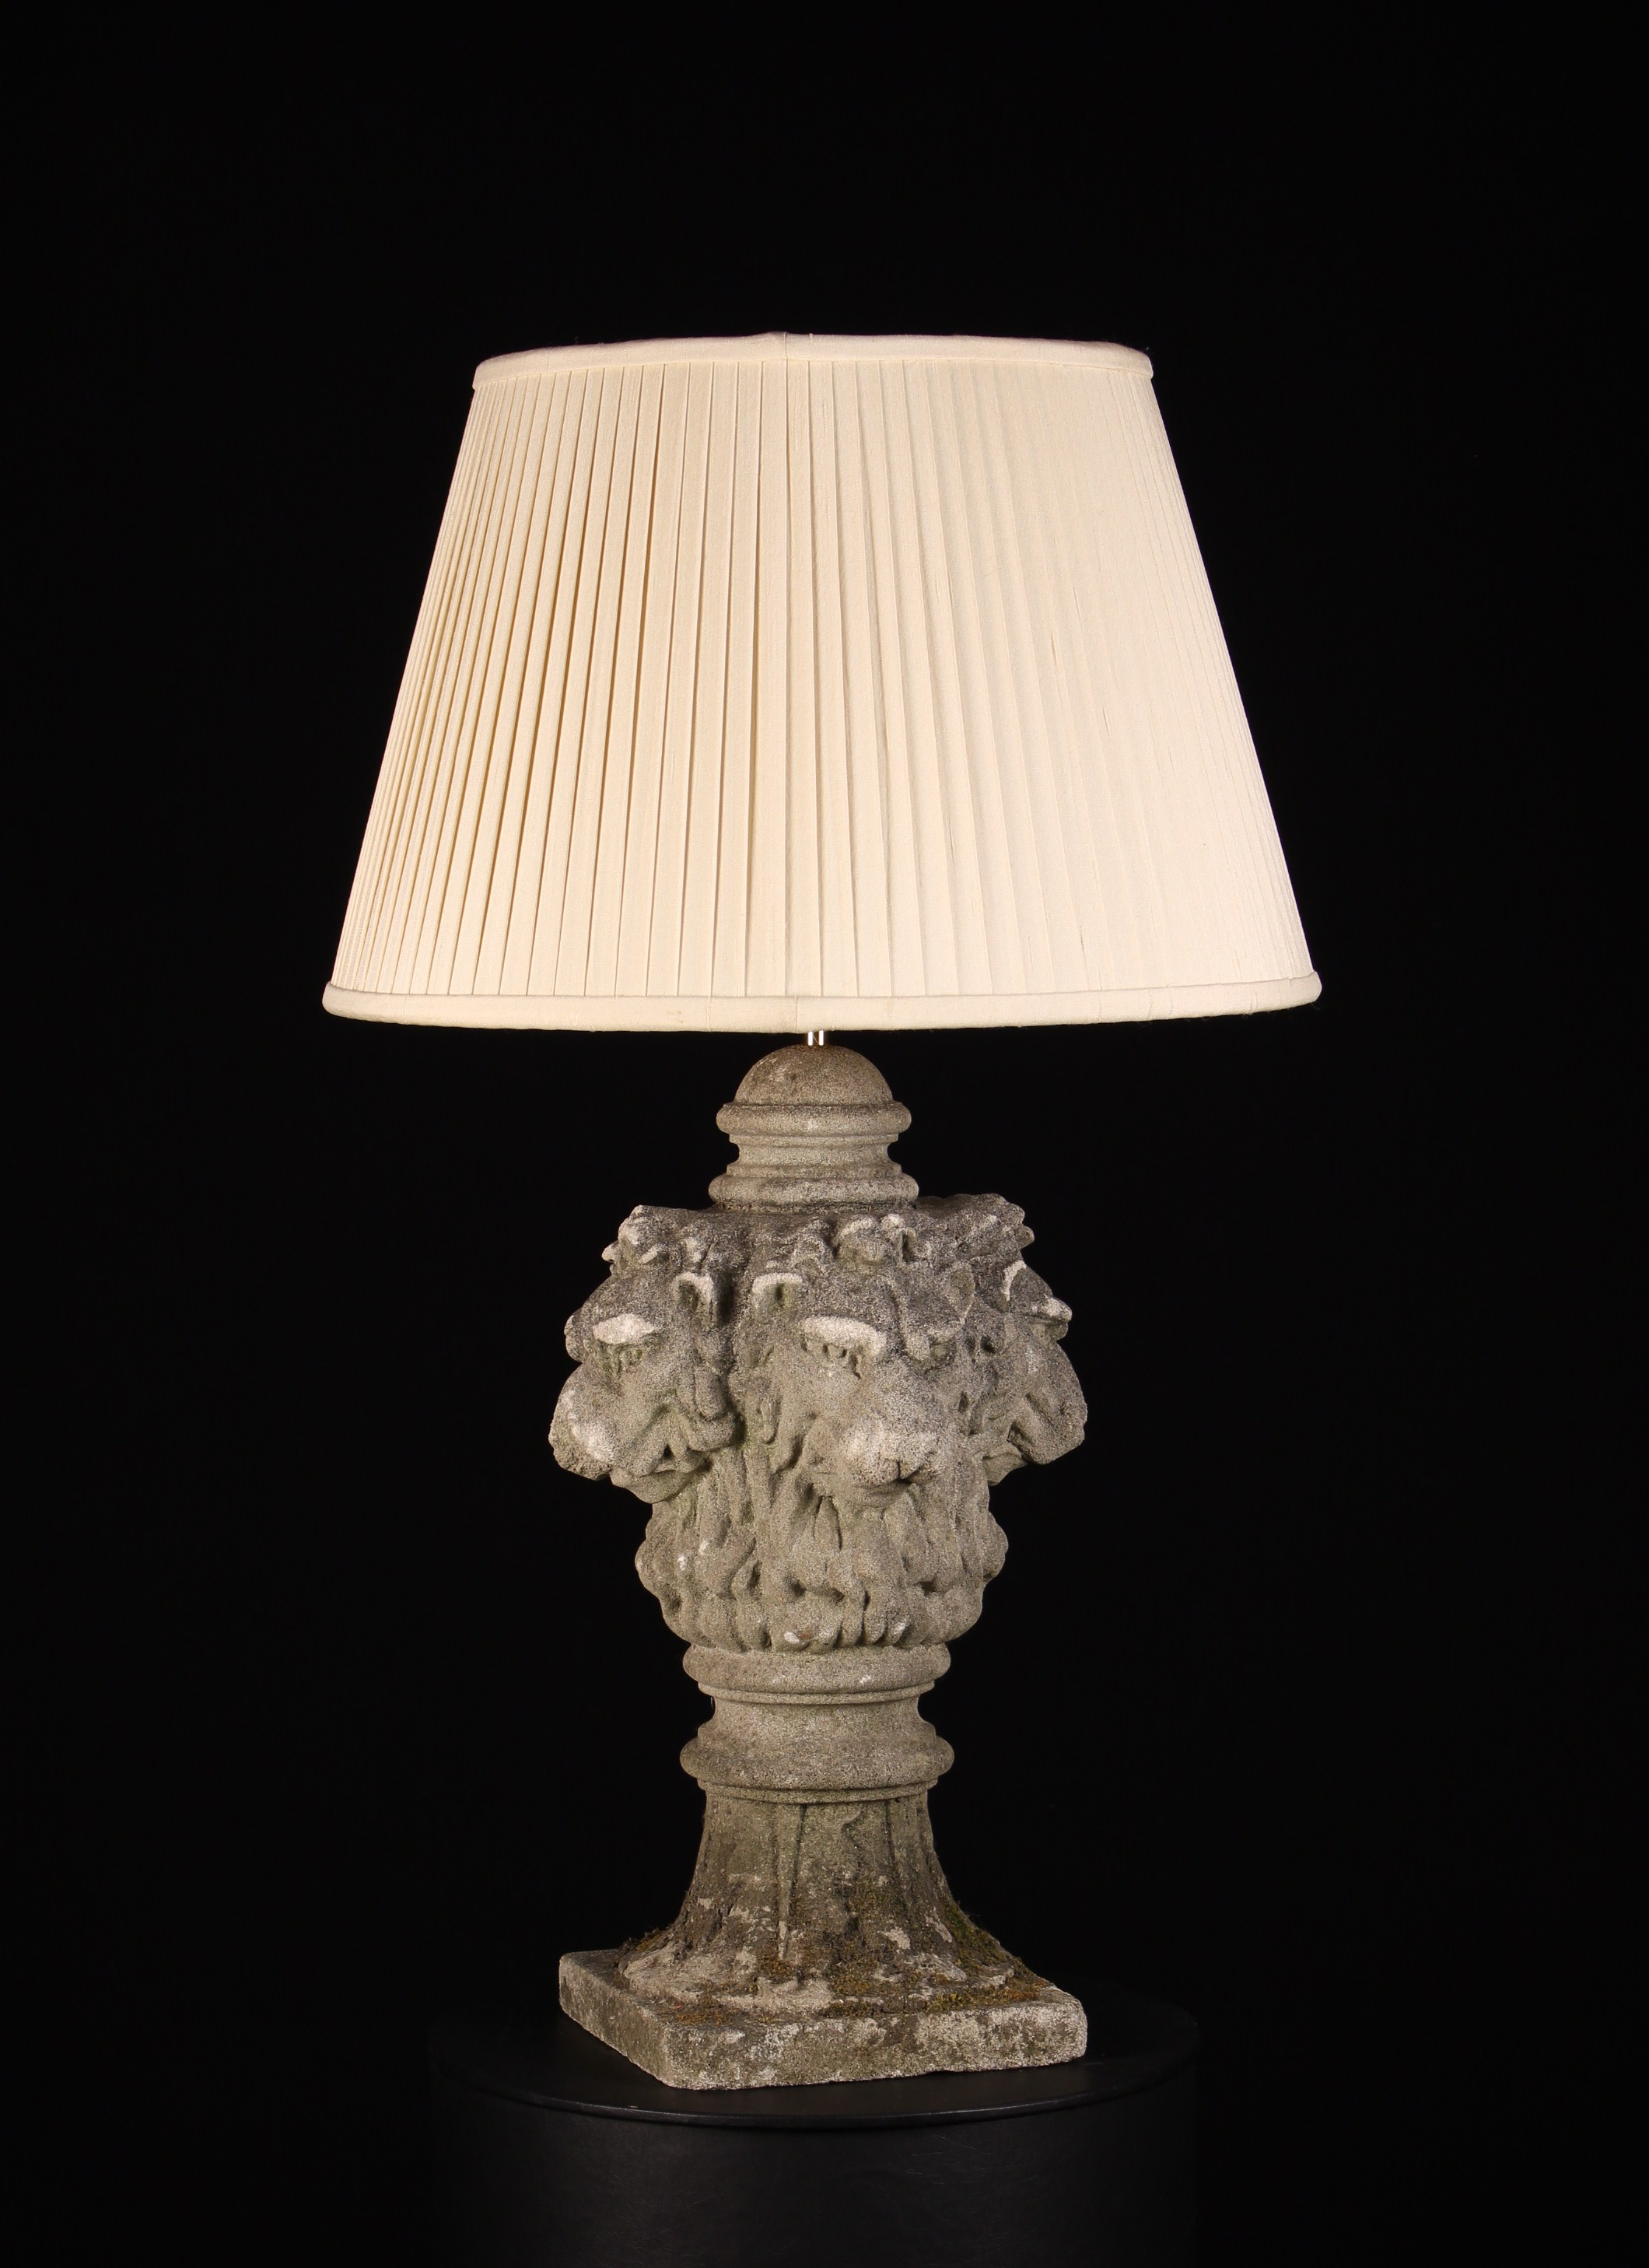 A Handsome Table Lamp incorporating an architectural stone pediment carved with four lion heads;